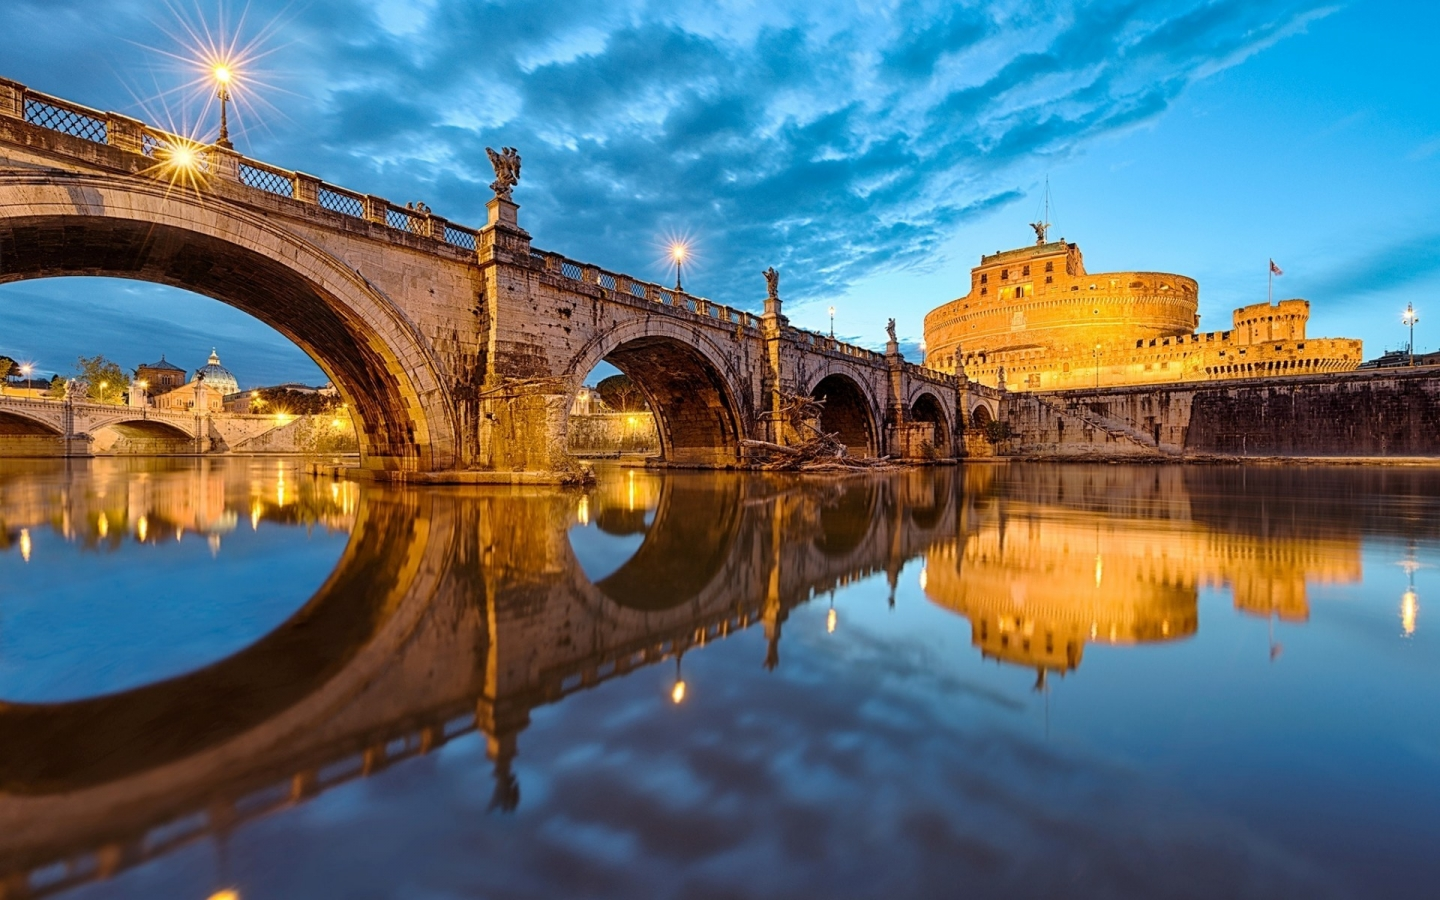 View of St Angelo Bridge for 1440 x 900 widescreen resolution